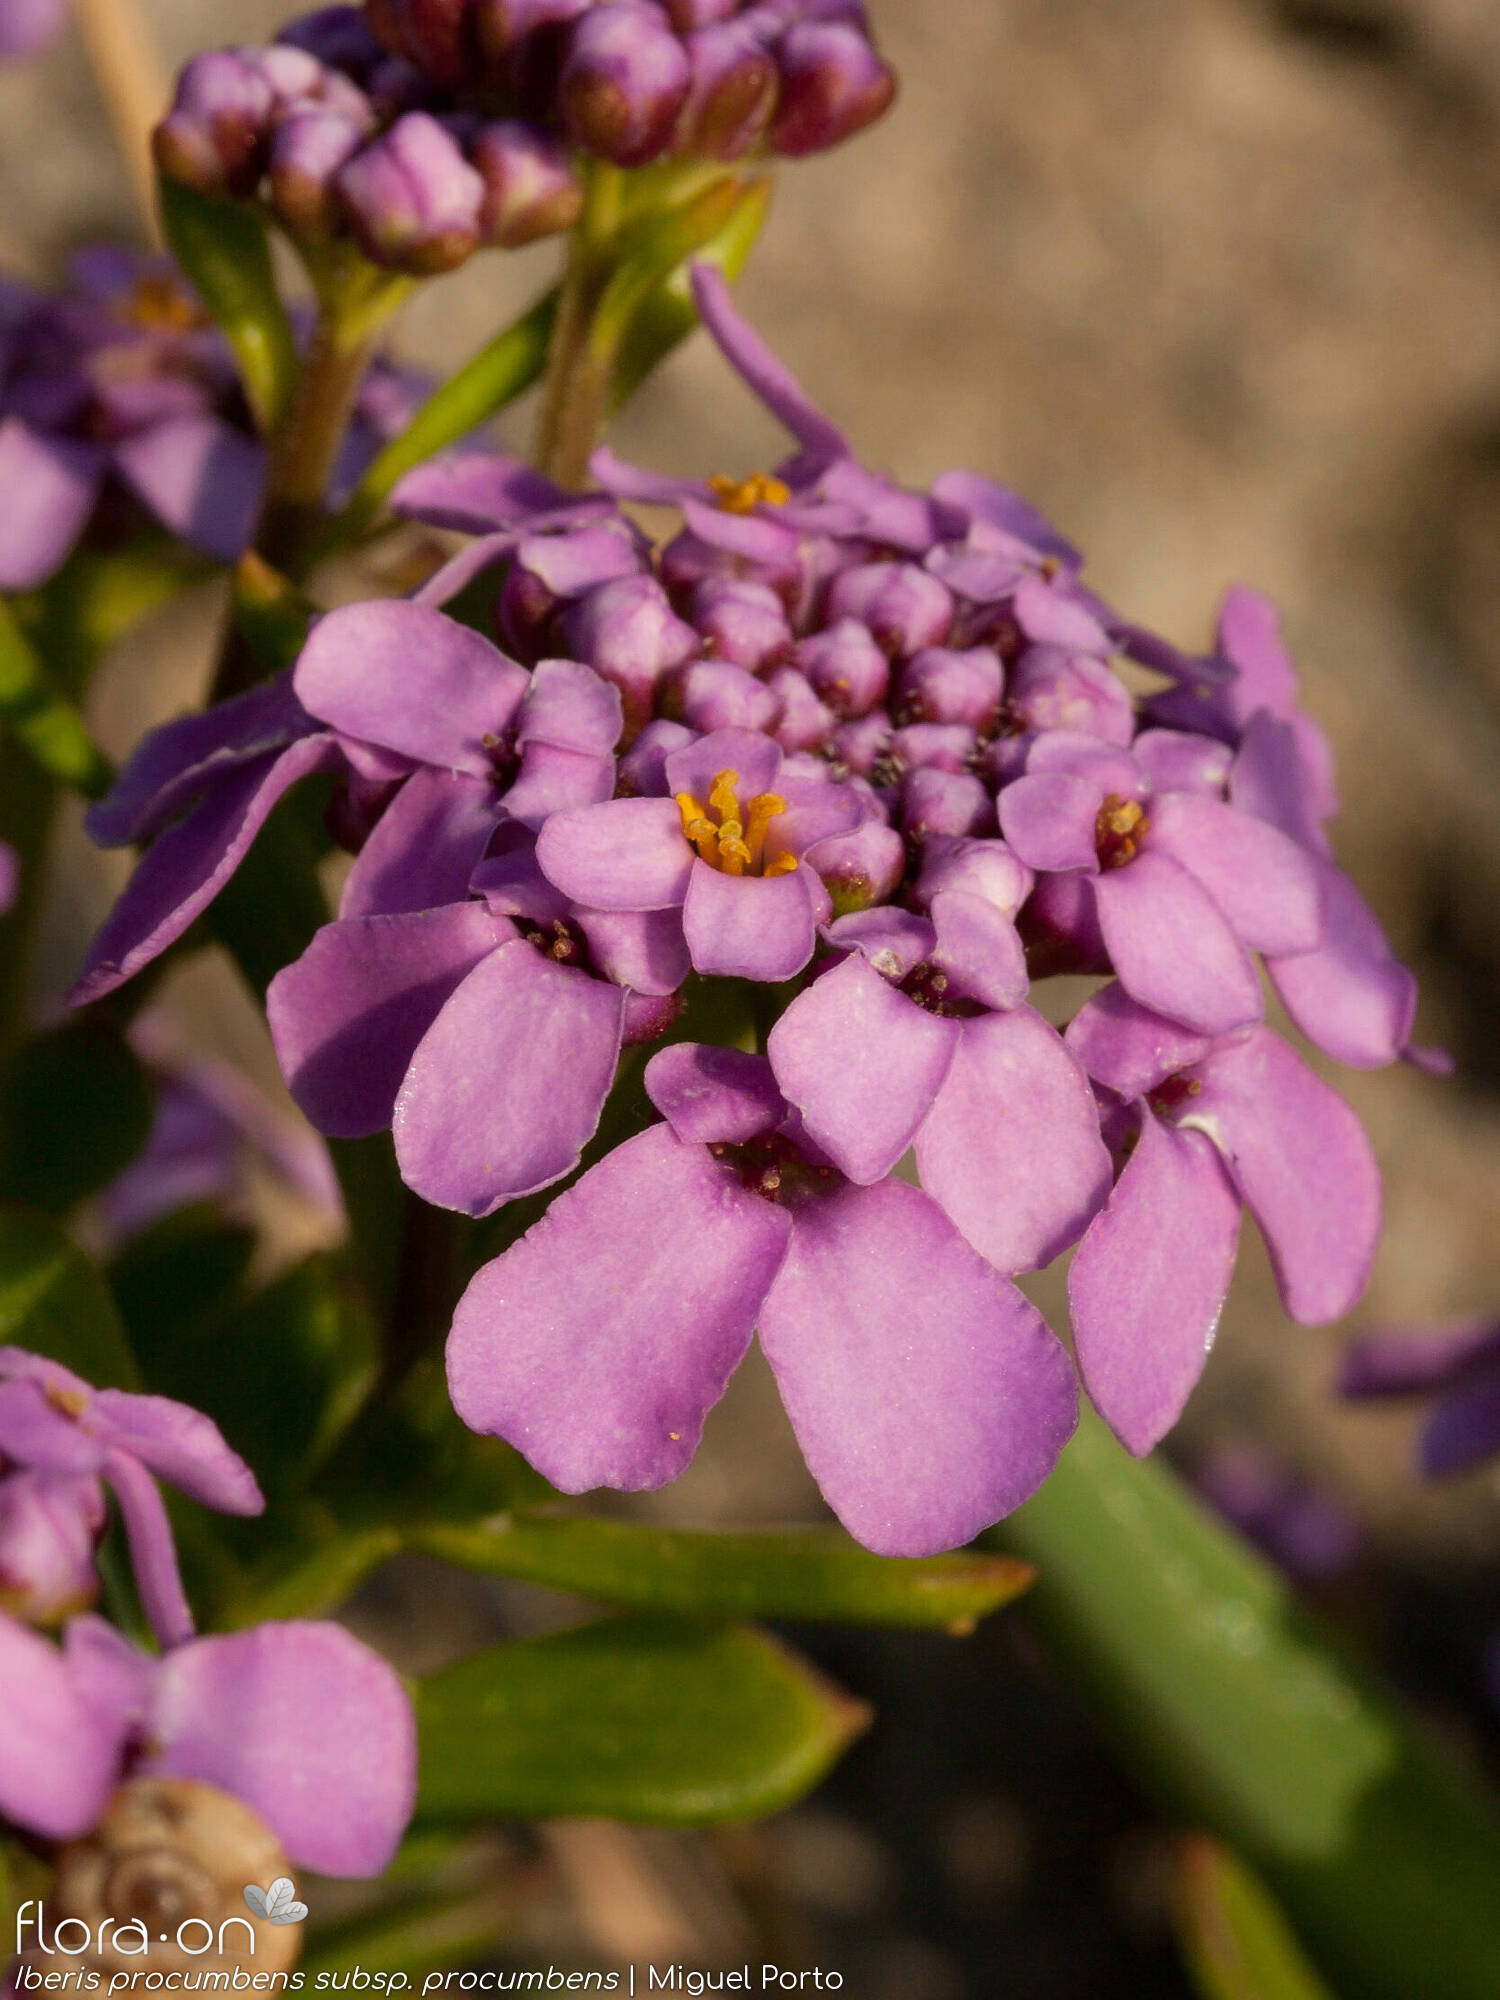 Iberis procumbens procumbens - Flor (close-up) | Miguel Porto; CC BY-NC 4.0